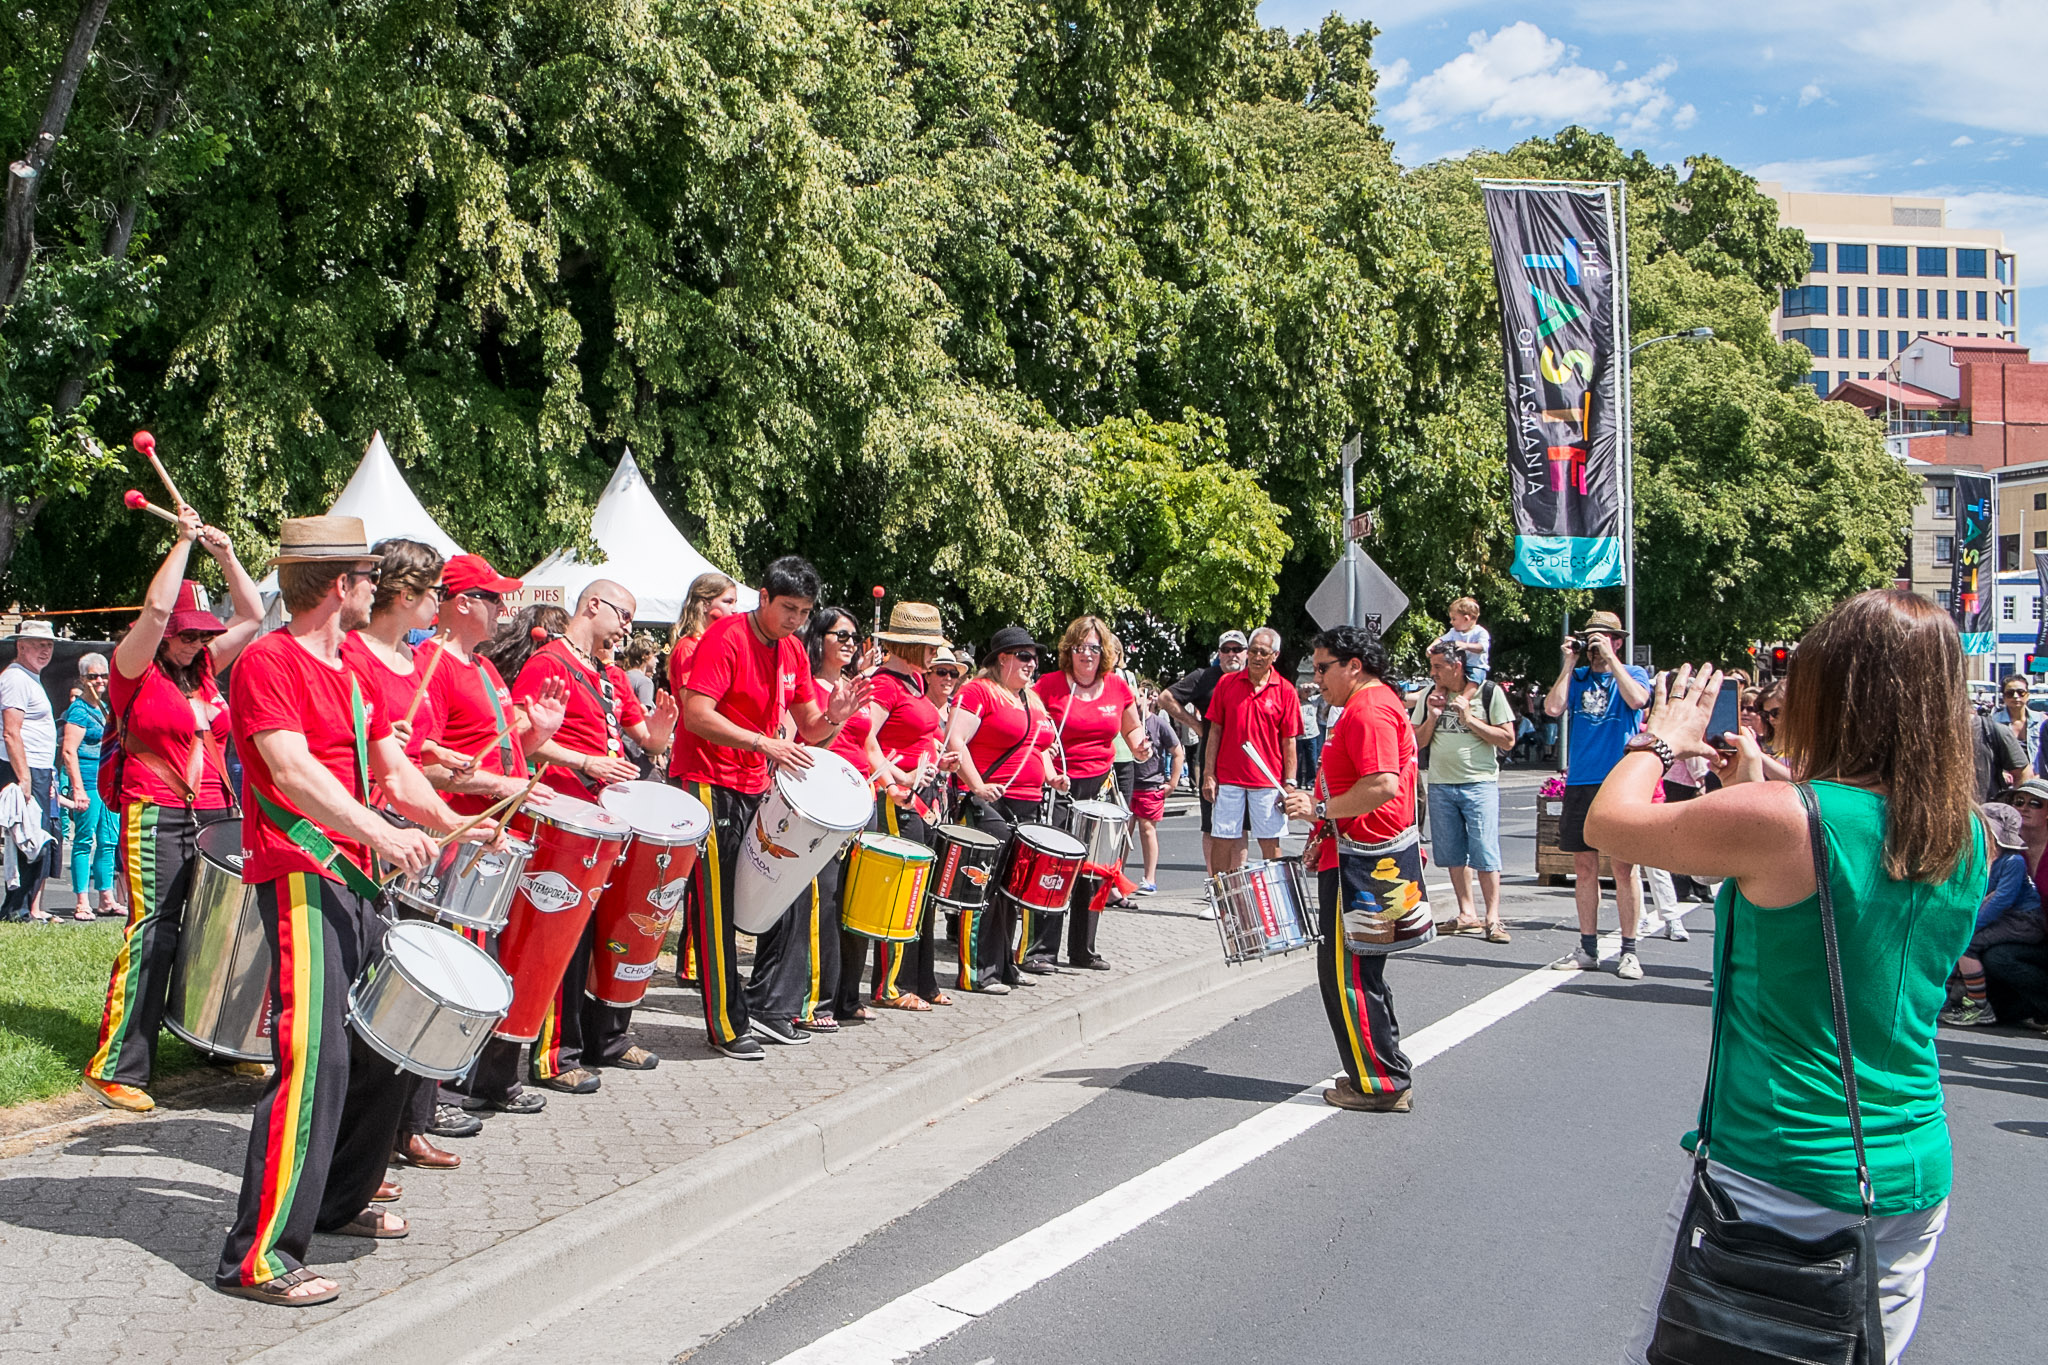 Chicada, Tasmania's first Samba band opened The Taste of Tasmania Festival right next to the Salamanca Market.